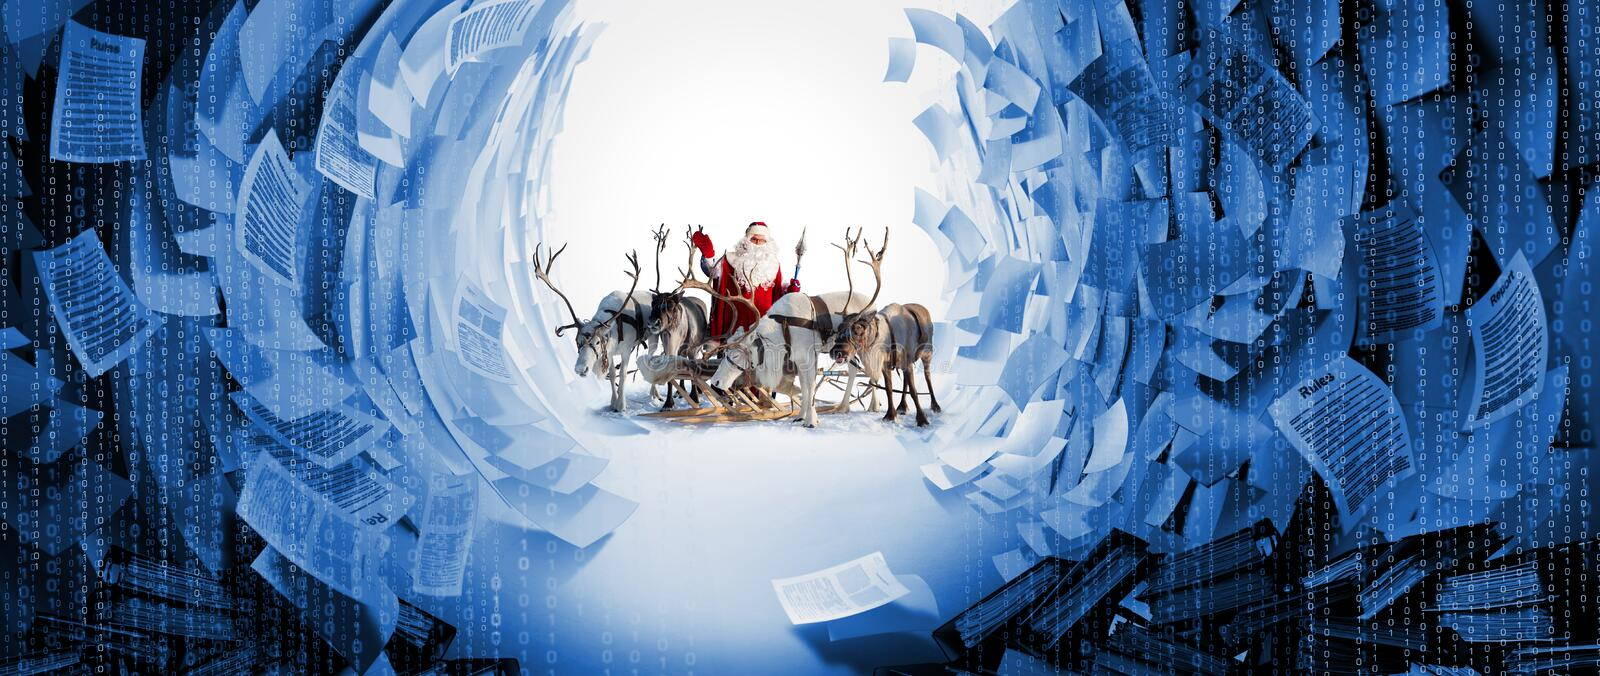 Santa Claus and his deer in Cristmas holiday stock photo